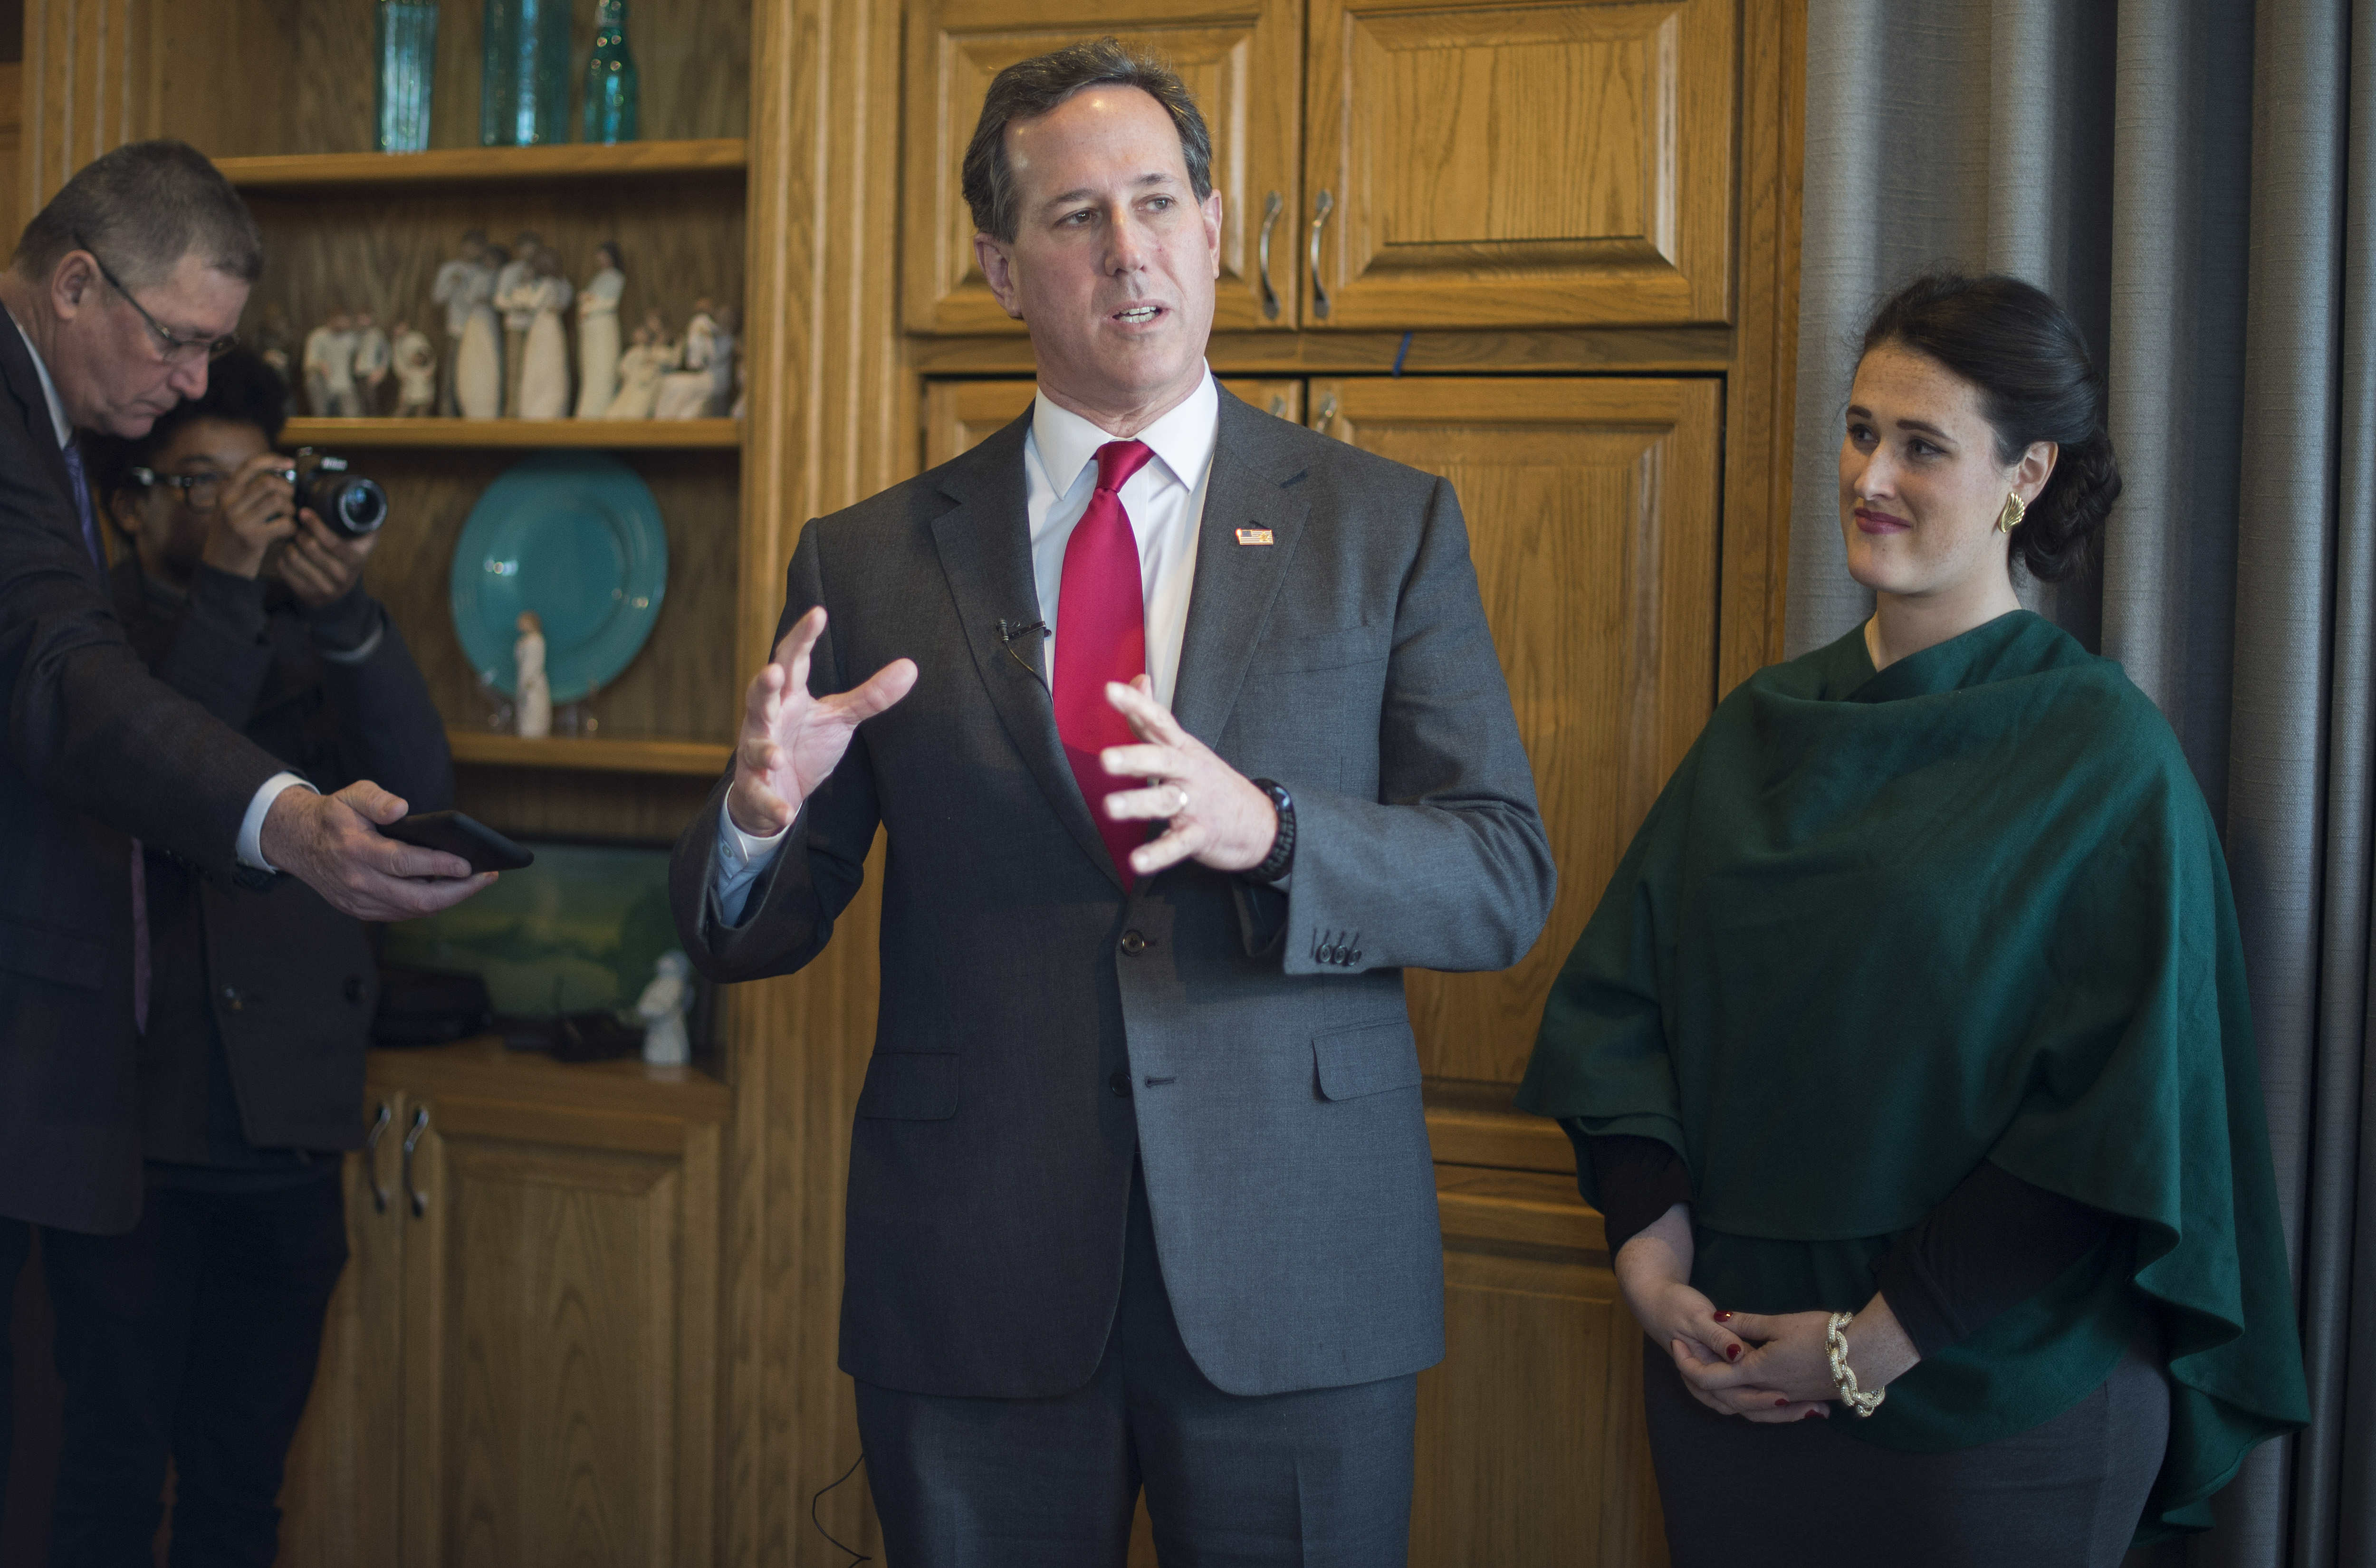 Republican presidential candidate Rick Santorum speaks beside daughter Elizabeth during a campaign stop at a private residence in West Des Moines, Iowa, on Jan. 31, 2016, ahead of the Iowa Caucus.